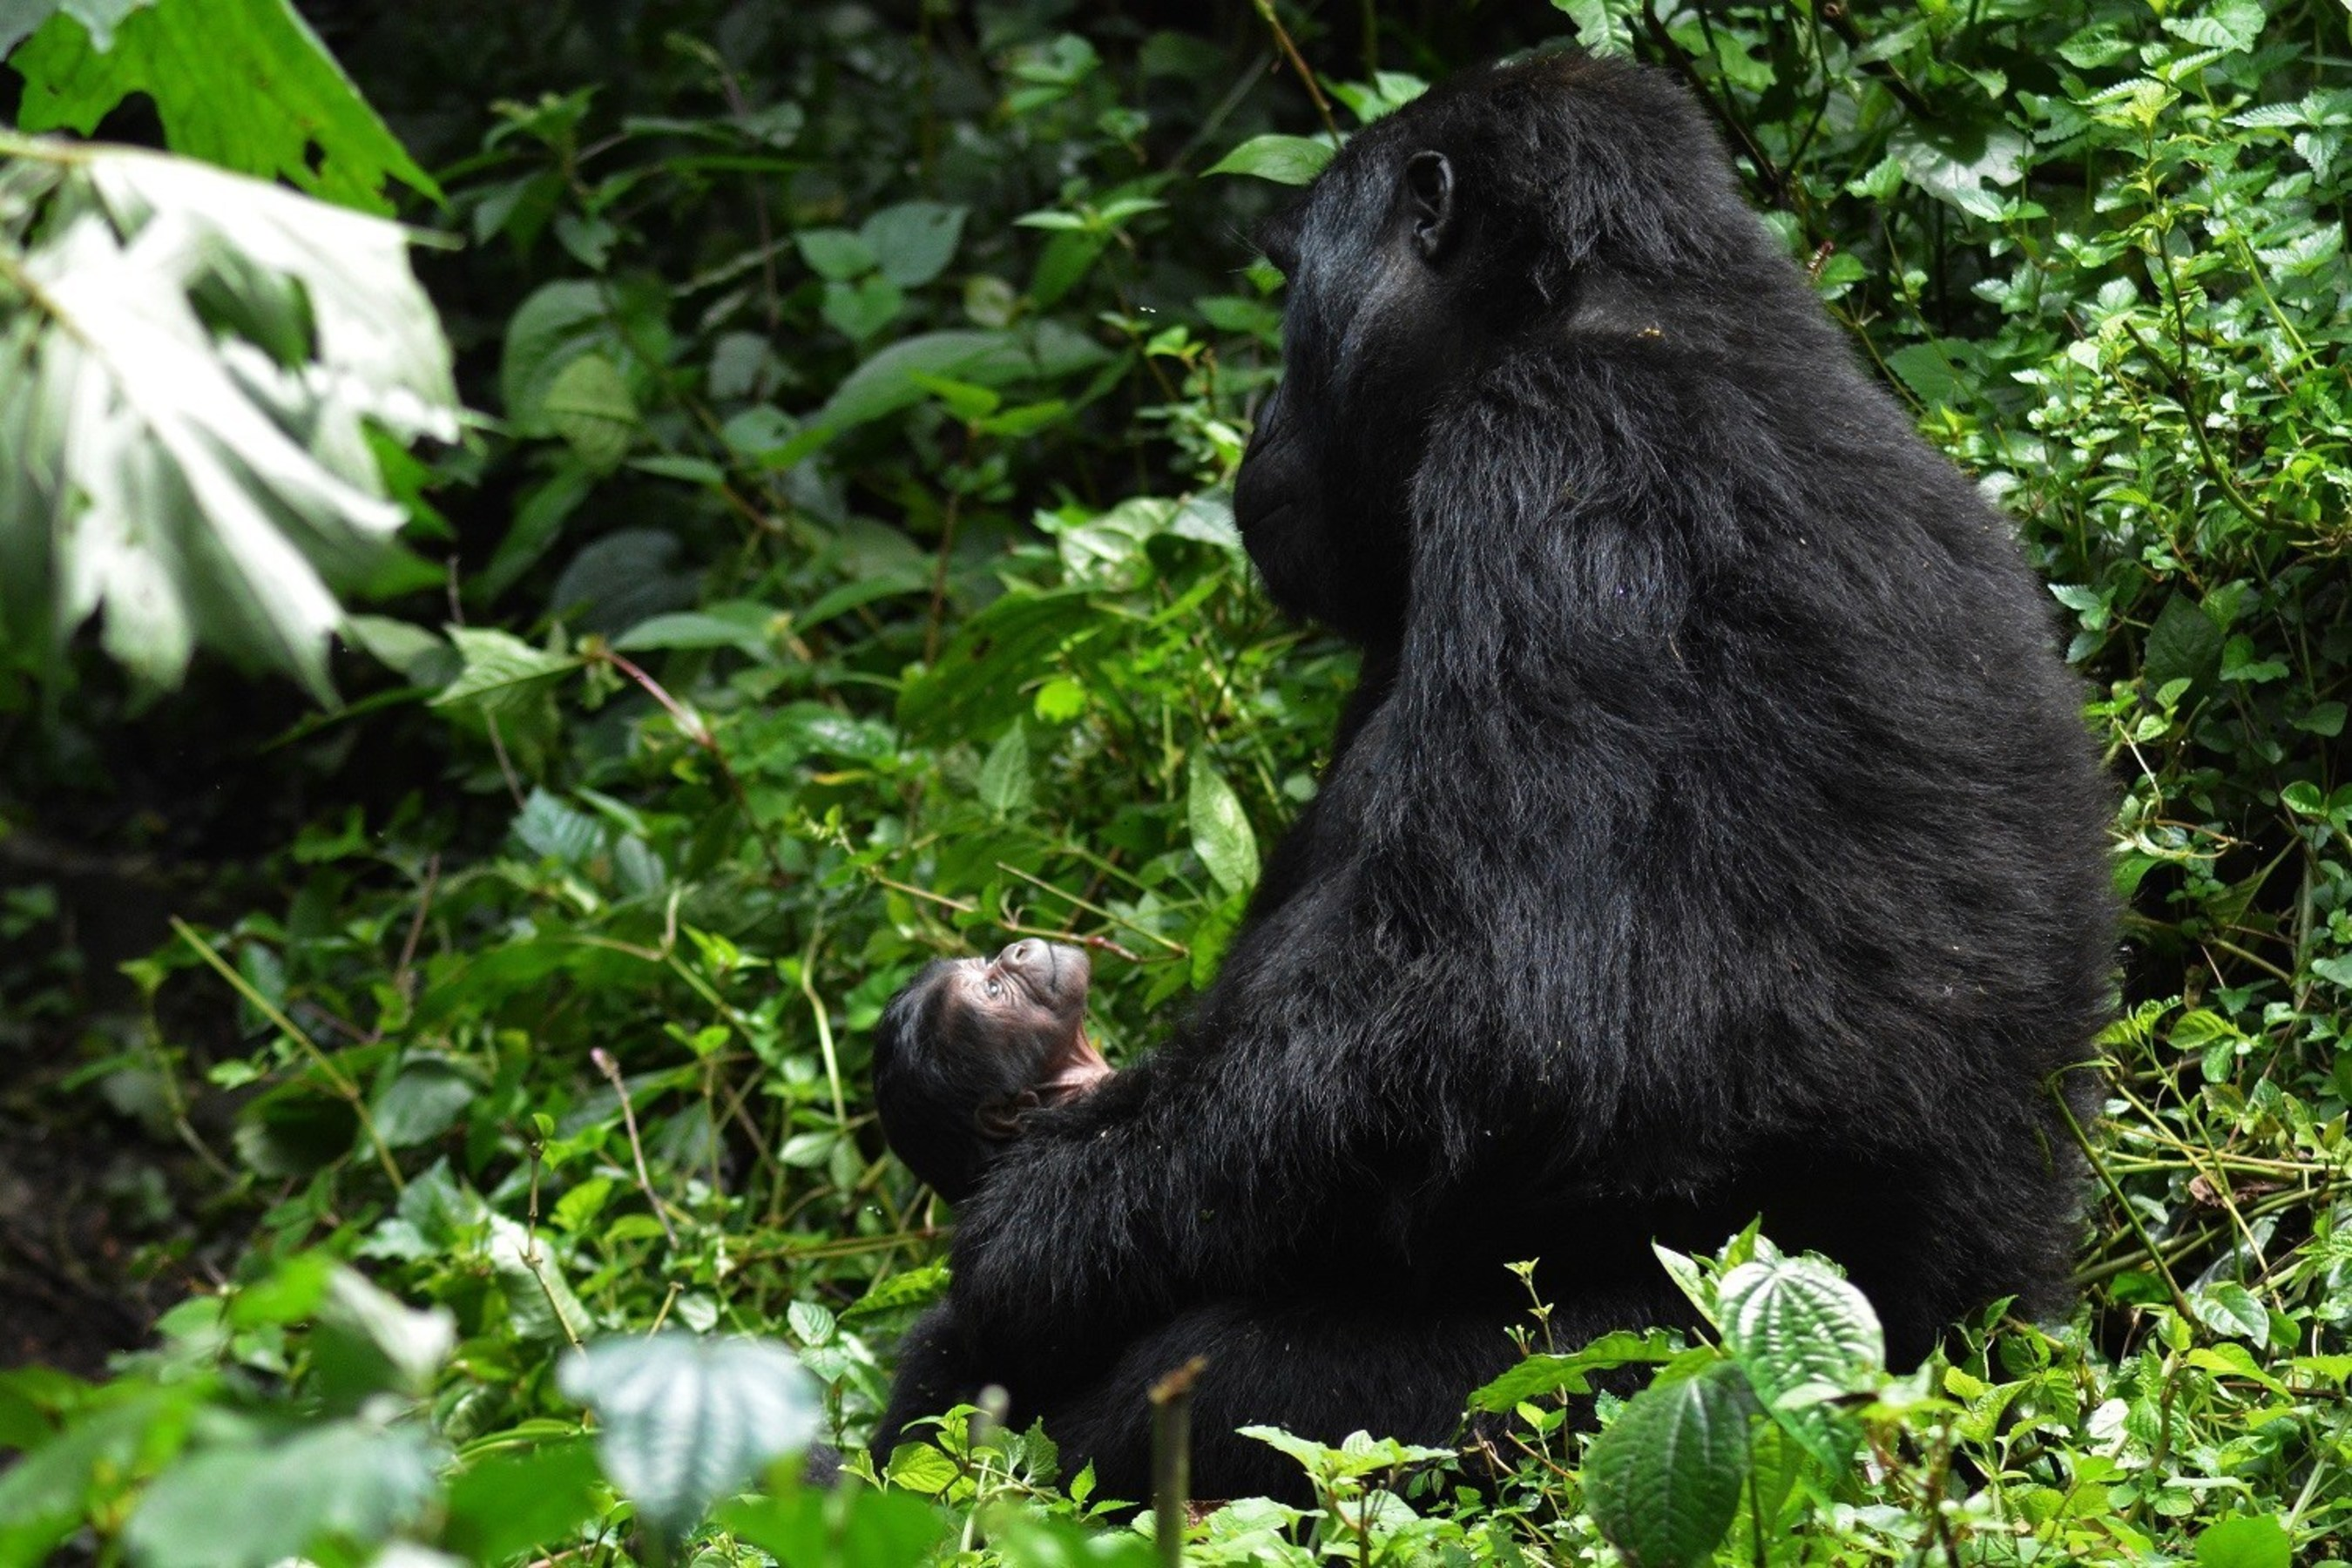 """Uganda's newest mountain gorilla, named """"Masiko"""" or """"Hope"""", was born in Bwindi Impenetrable National Park in late September. Uganda is home to approximately 480 mountain gorillas, more than half the world's remaining population."""